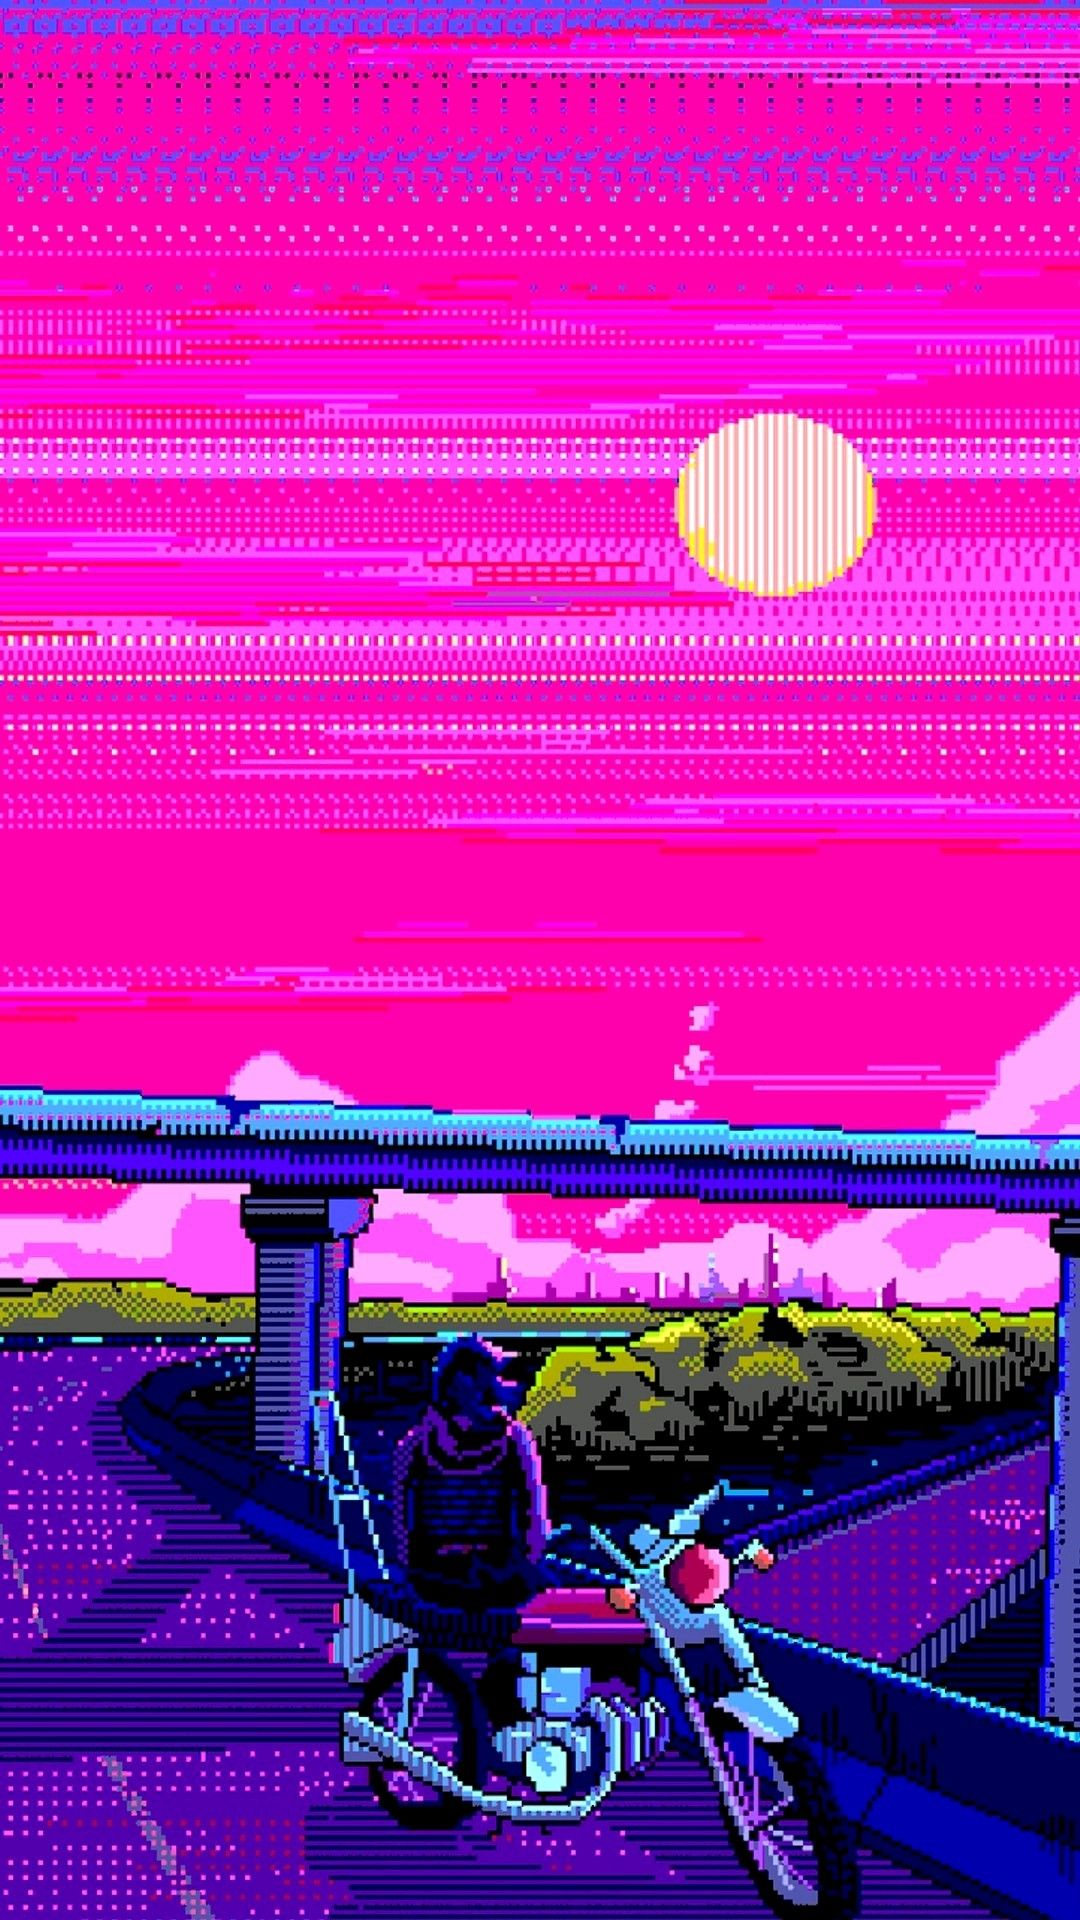 Pin by Gary Ellis on Aesthetic Pixel art background